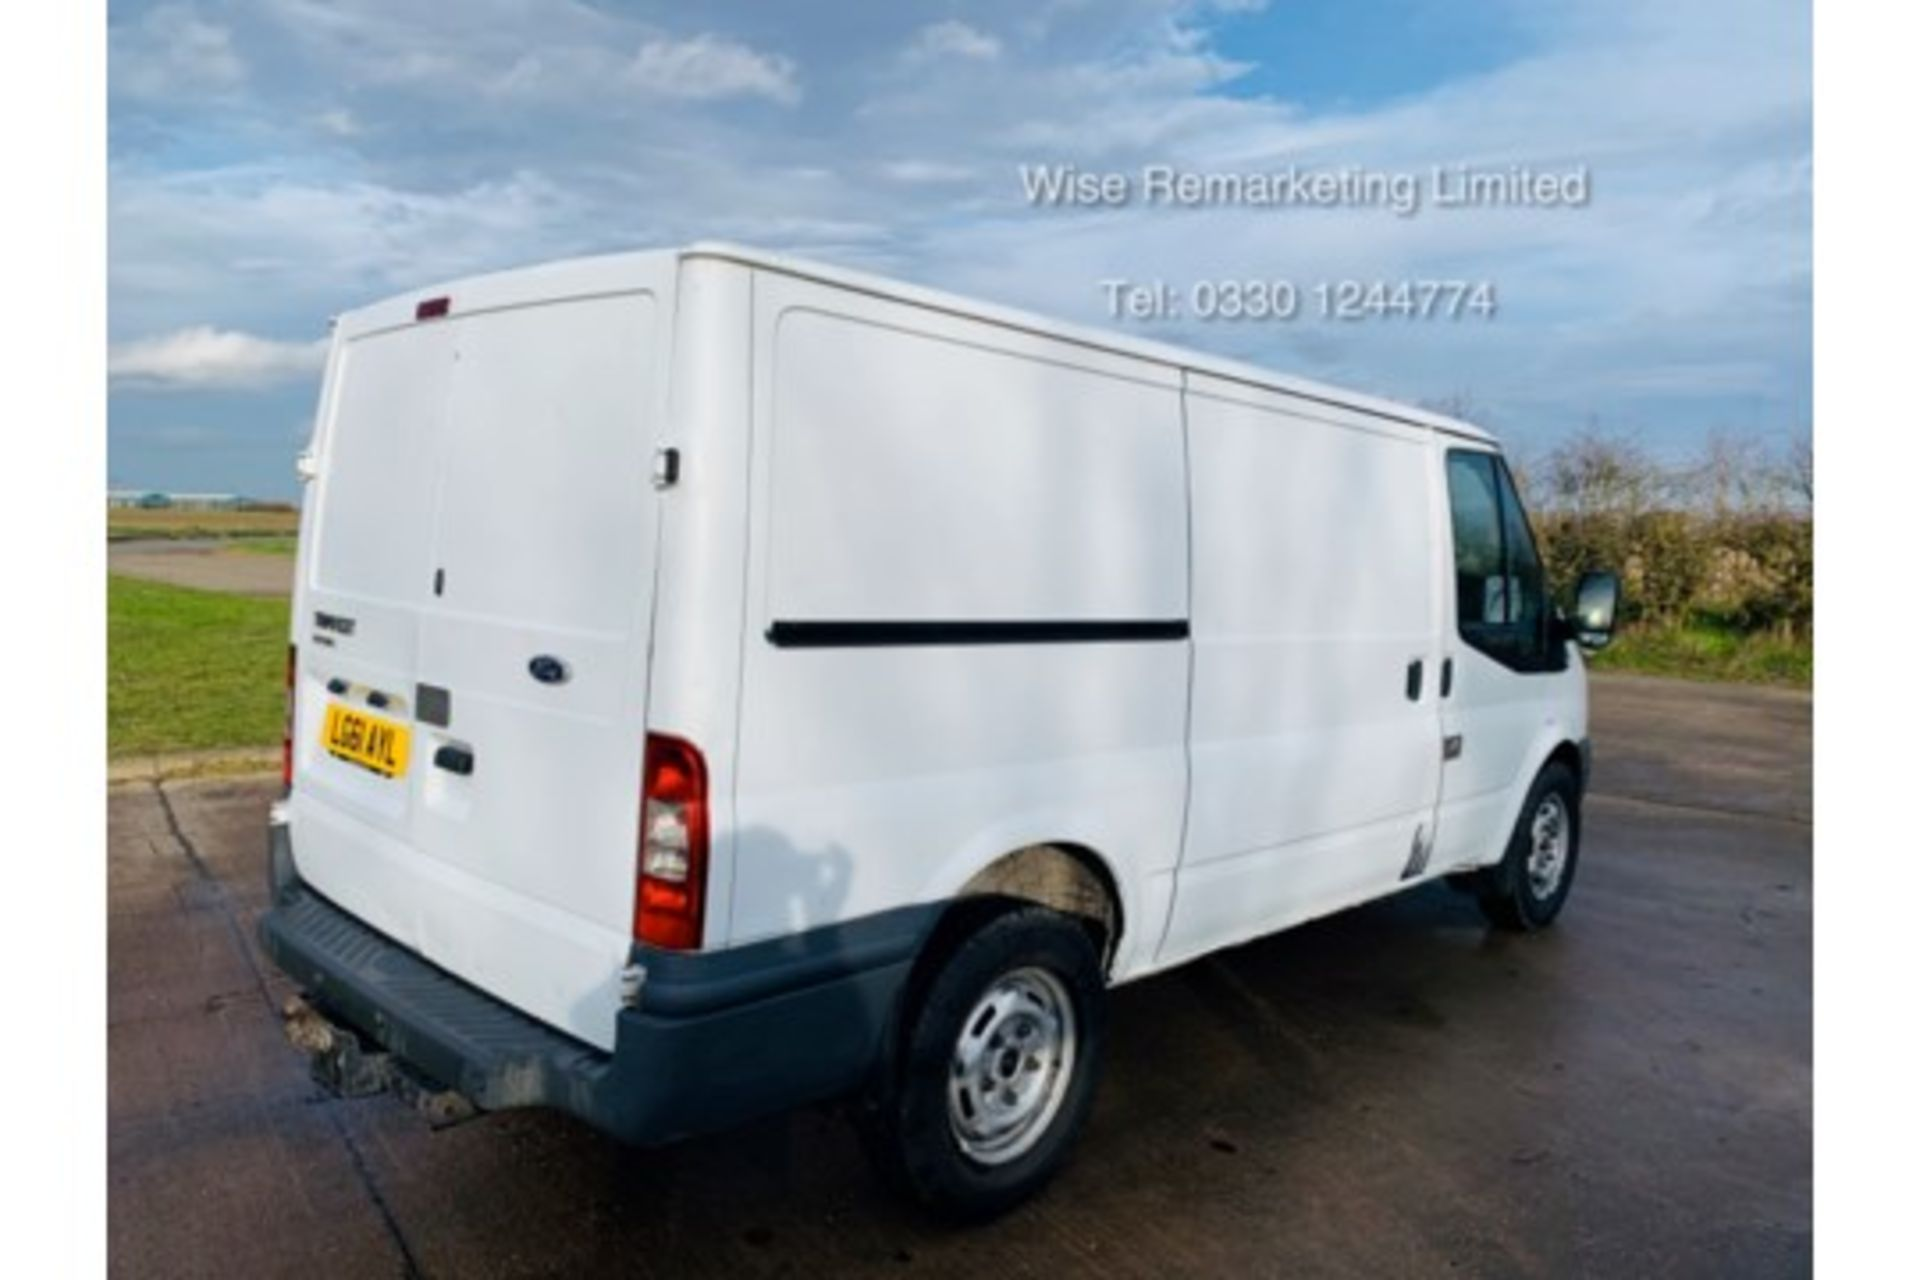 Lot 26 - Reserve Met Ford Transit T350 2.2 TDCI - 2012 Model - Air Con -Tow Bar - Ply Lined - Save 20% NO Vat